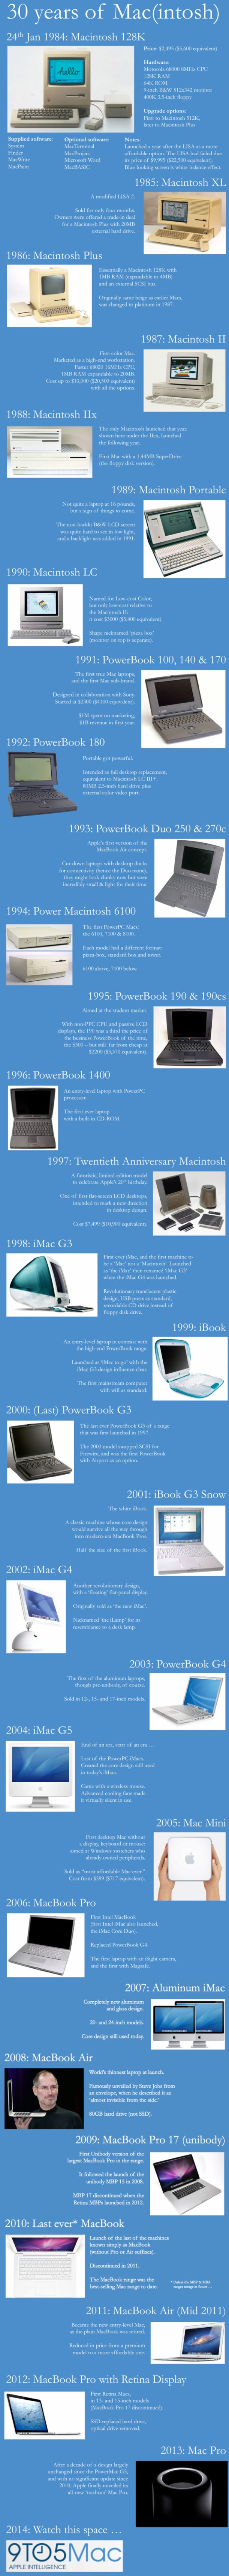 Infografia 30 years mac